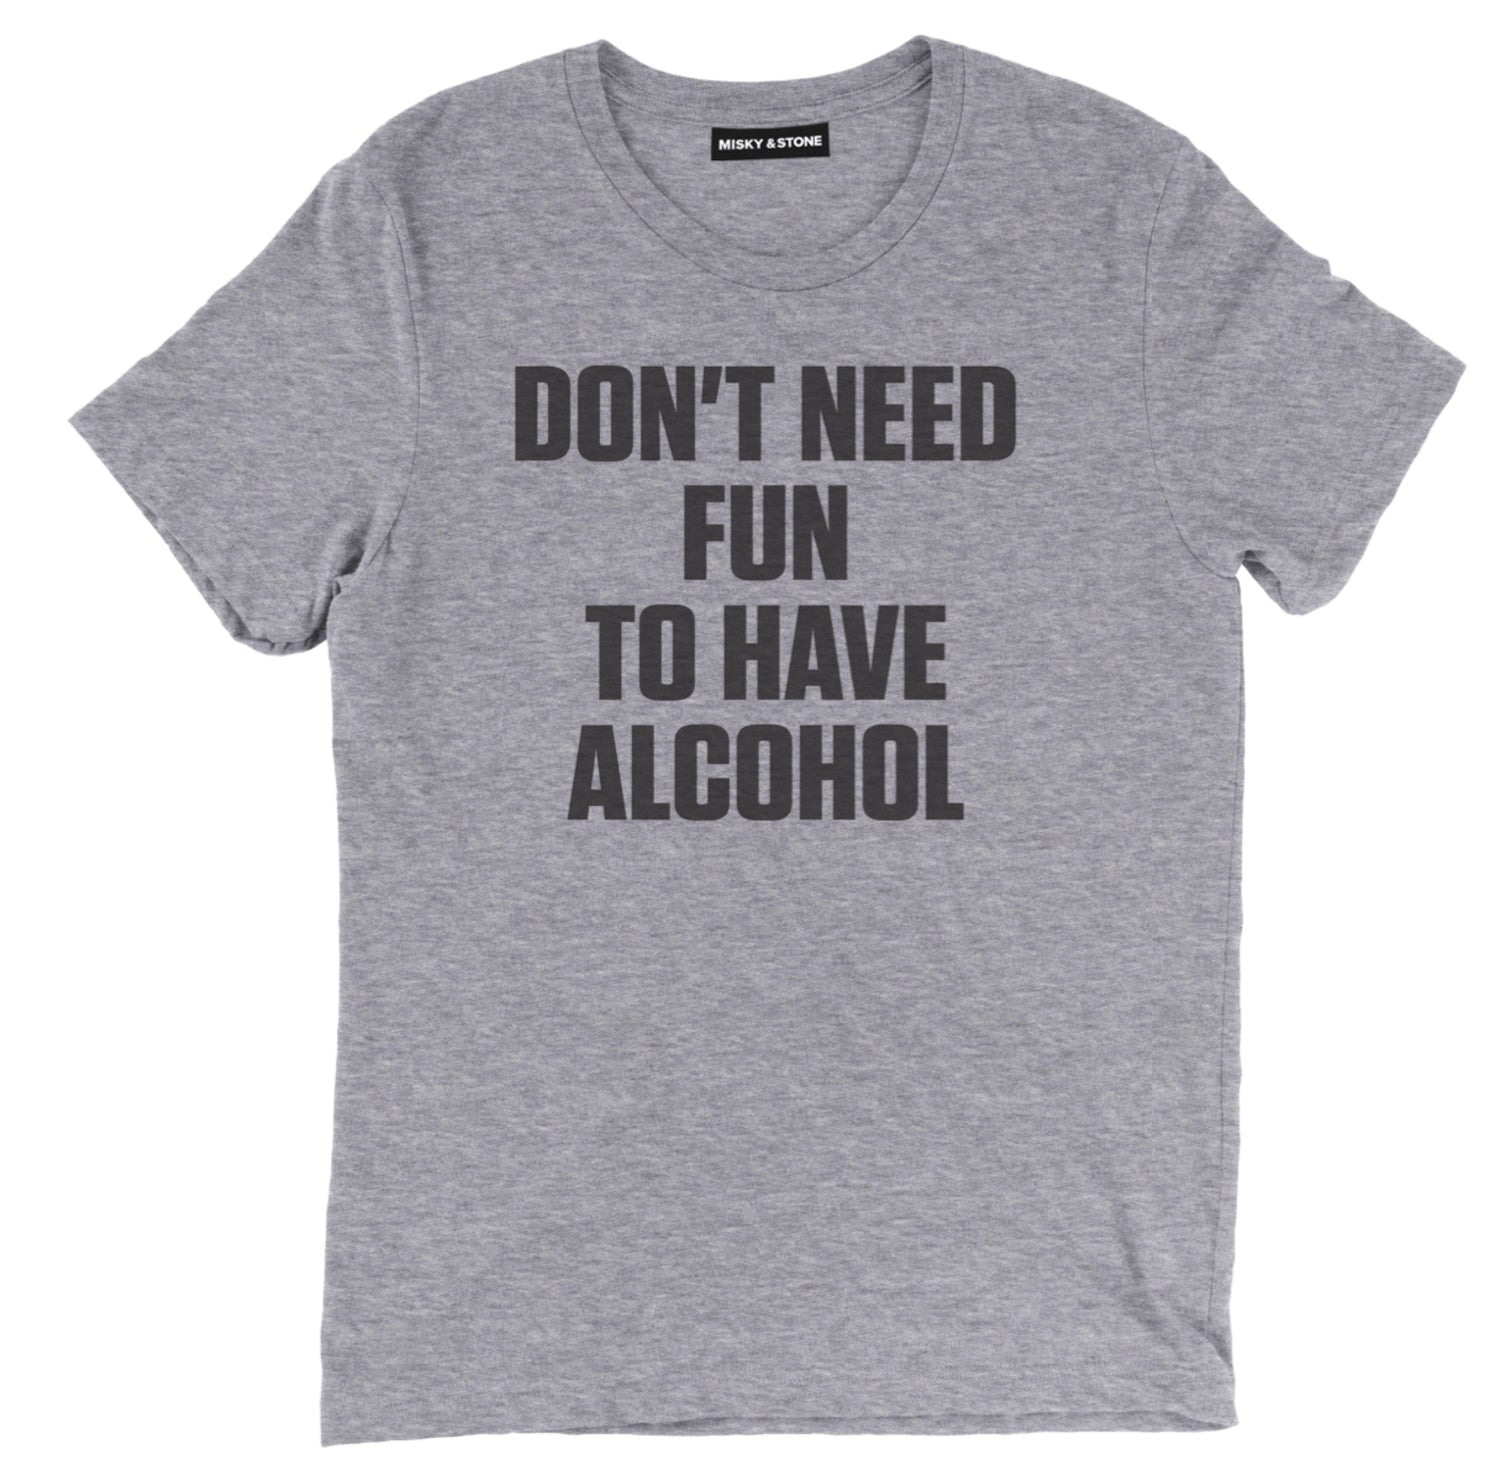 dont need fun to have alcohol t shirt, drunk shirts, drunk t shirts, funny drunk shirts, funny beer shirts, funny beer t shirts, drinking shirts, alcohol shirts, alcohol t shirts, funny drinking shirts, beer shirts